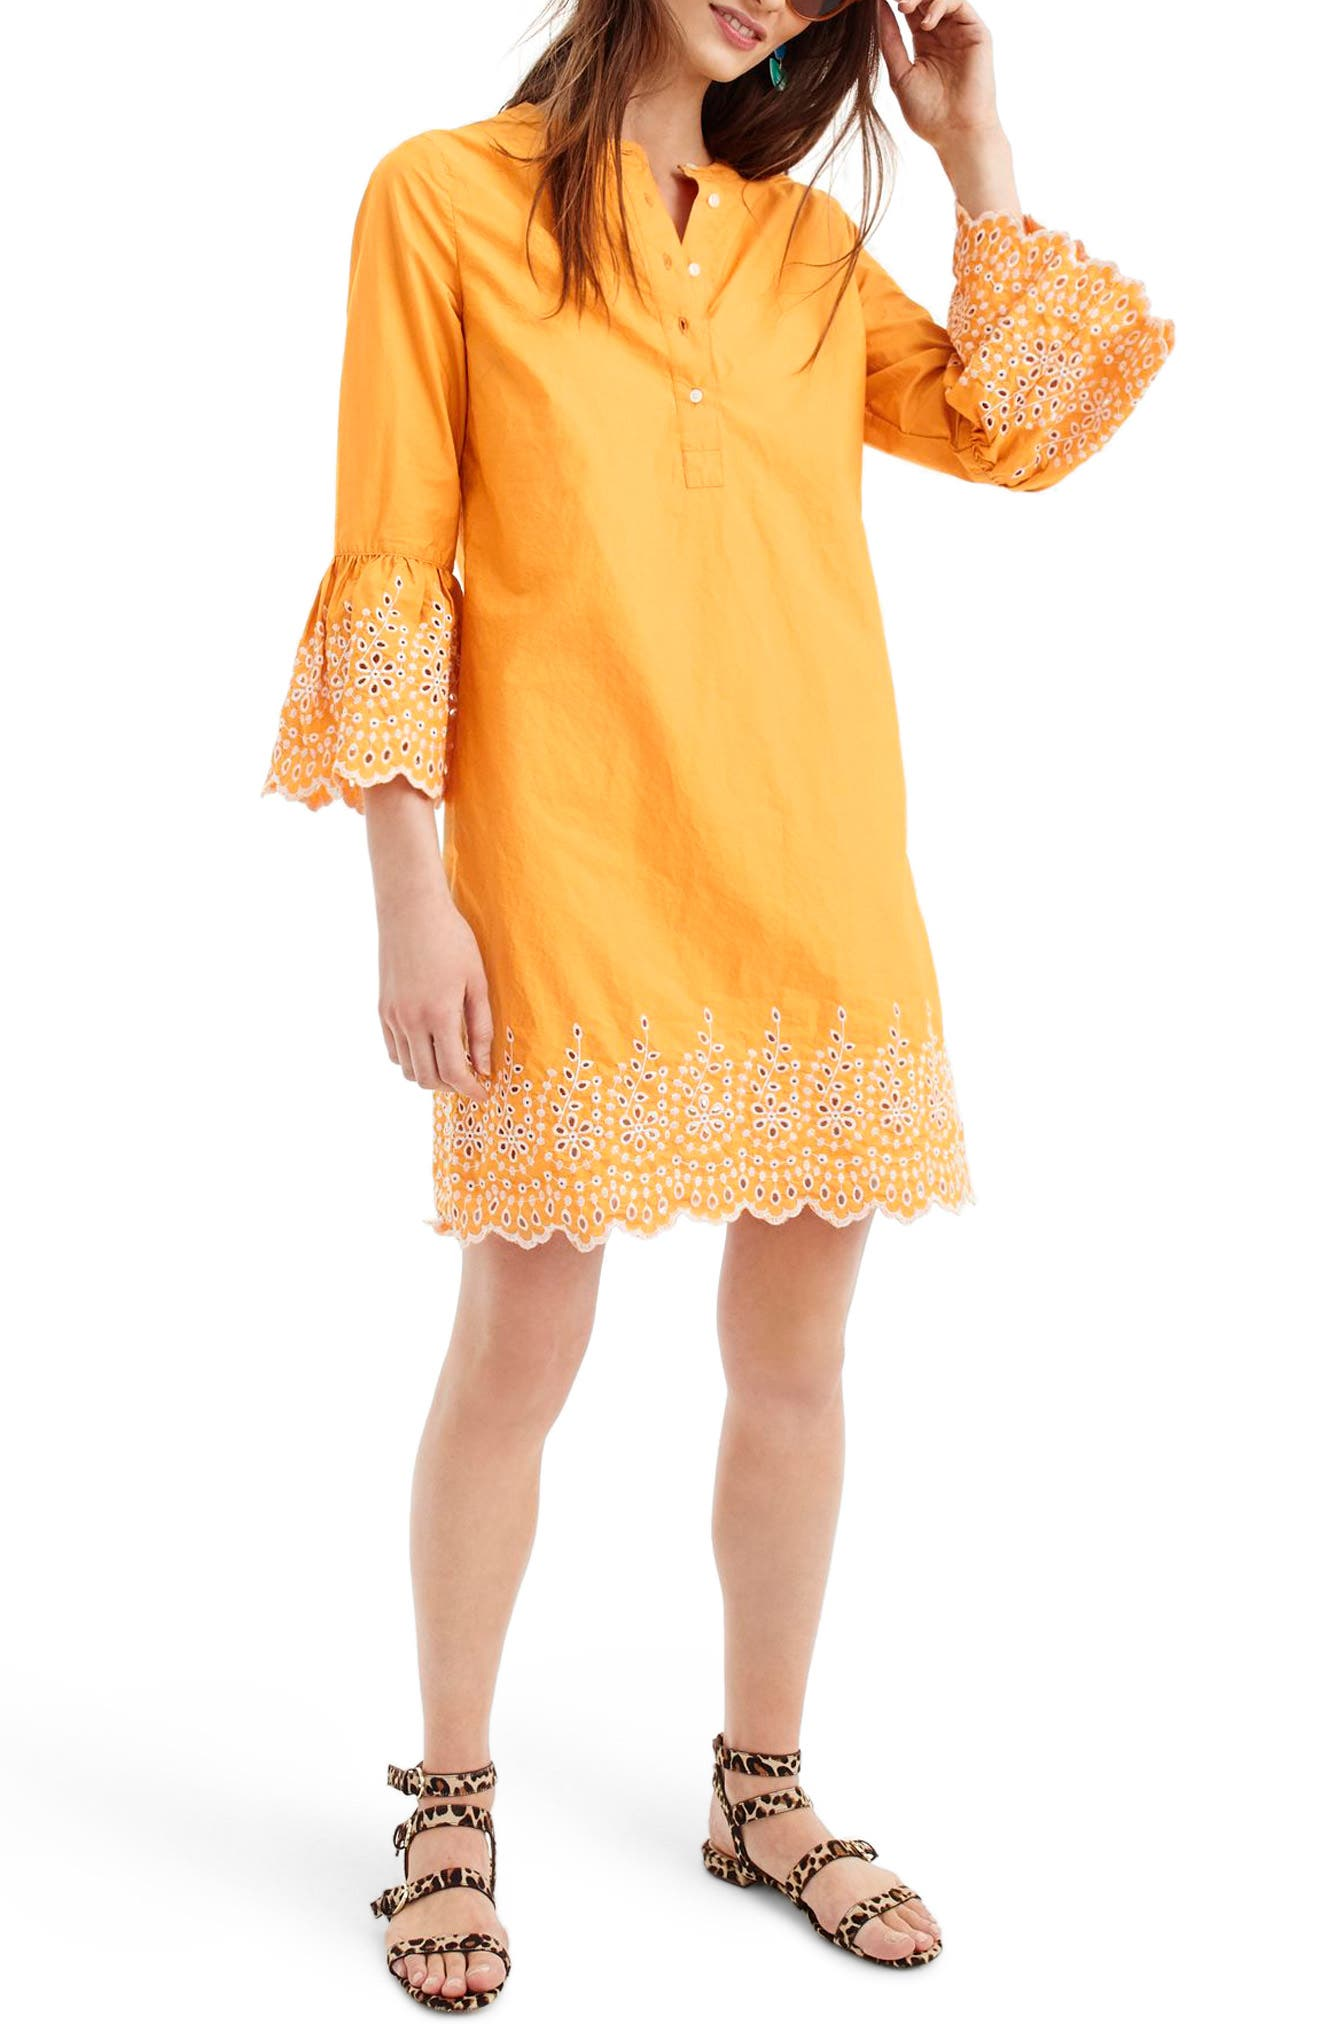 J.Crew Eyelet Bell Sleeve Dress,                         Main,                         color, Bronzed Orange